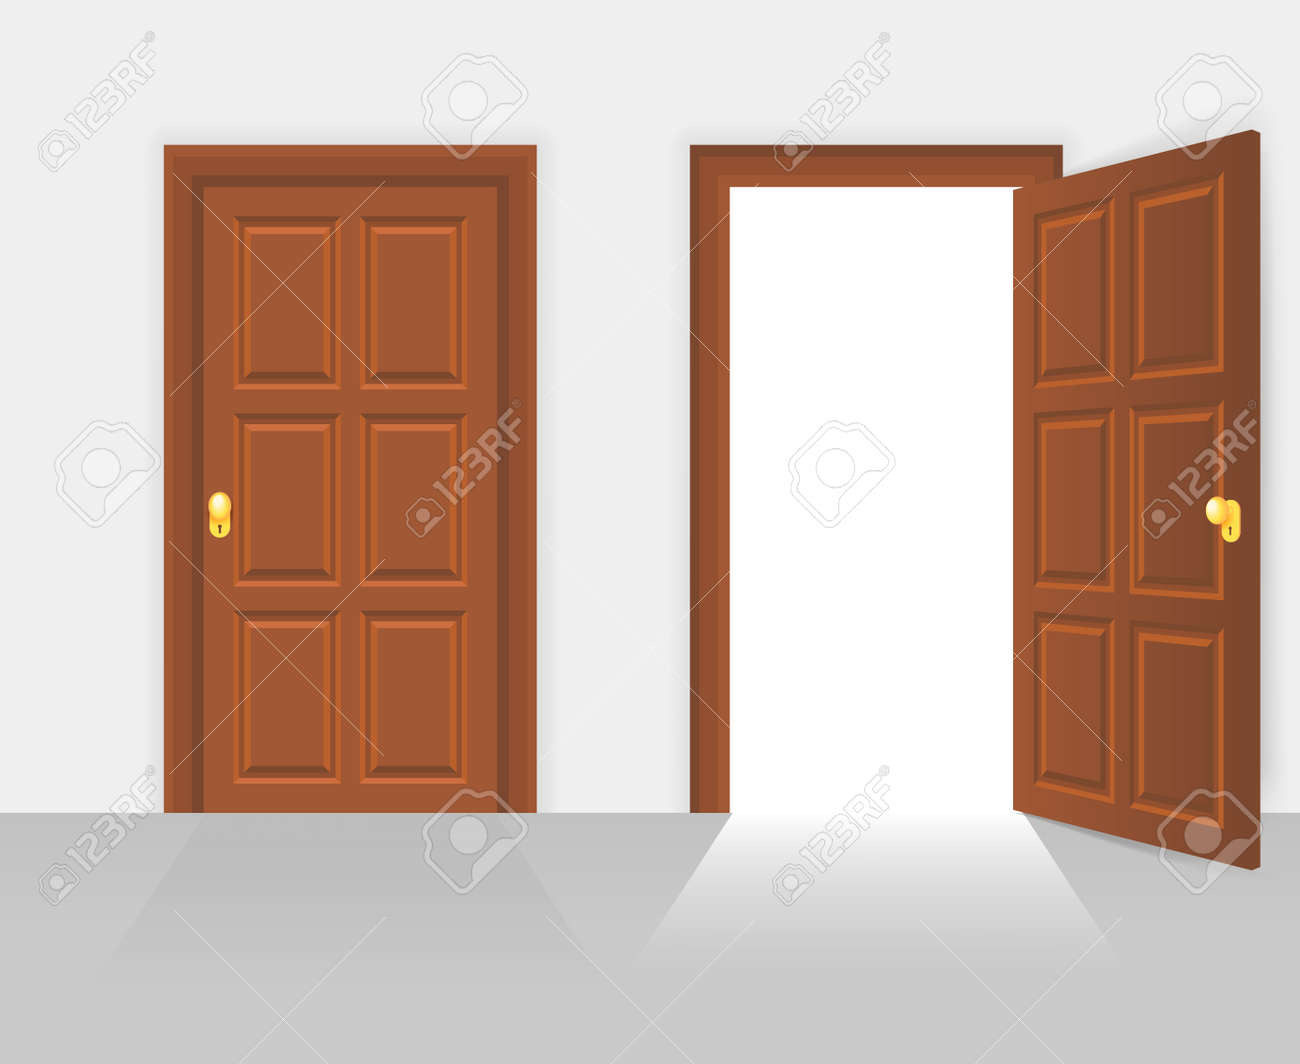 Open and closed door house front. Wooden open entry with shining light. Vector illustration - 167186398